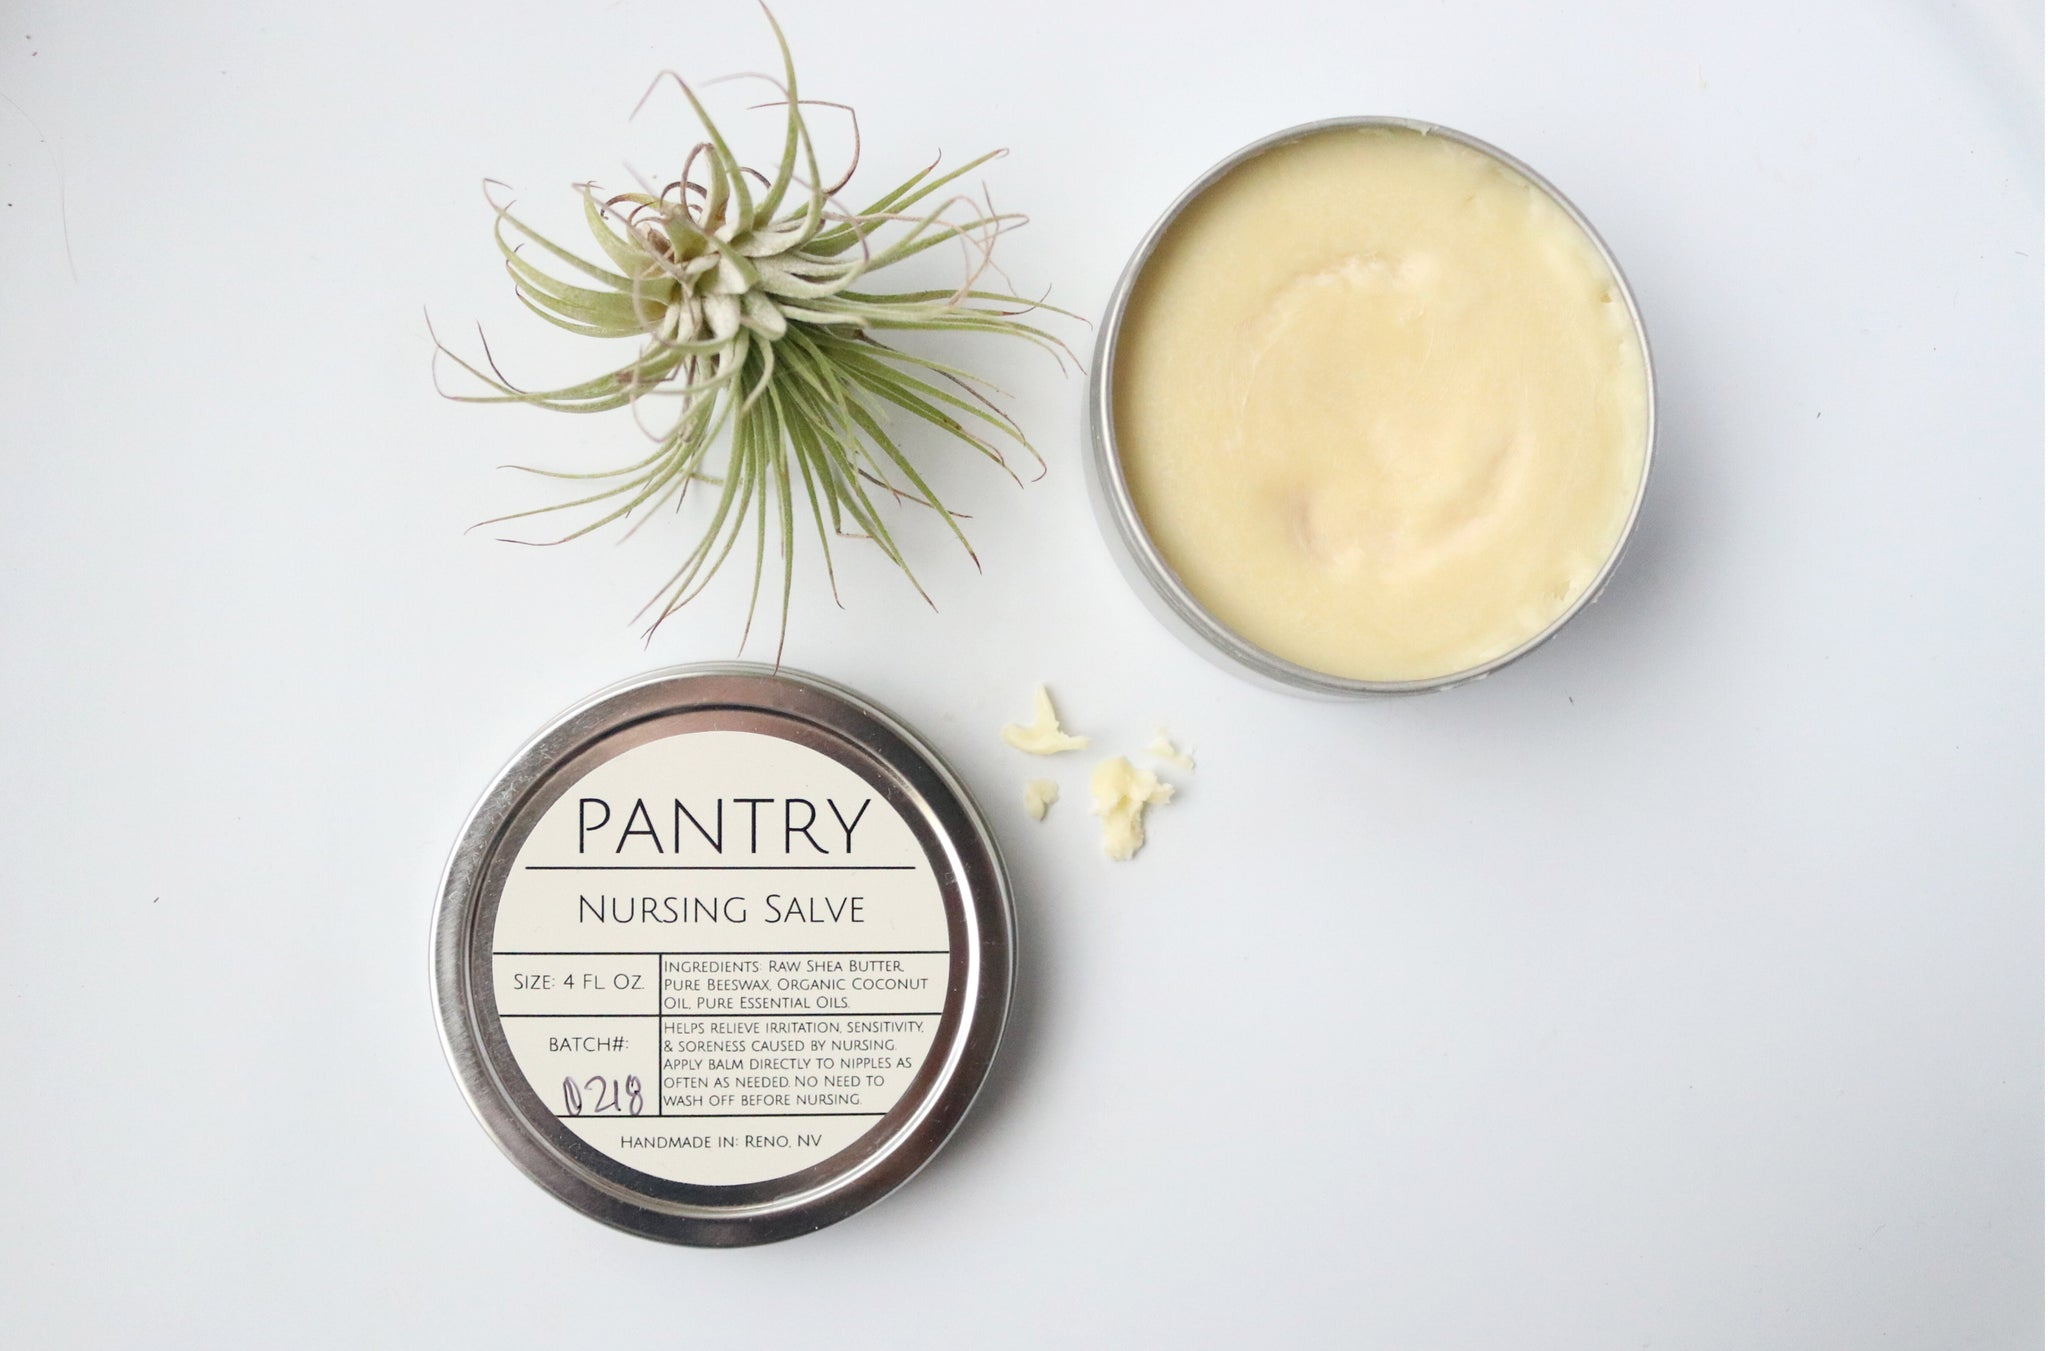 Pantry Nursing Salve